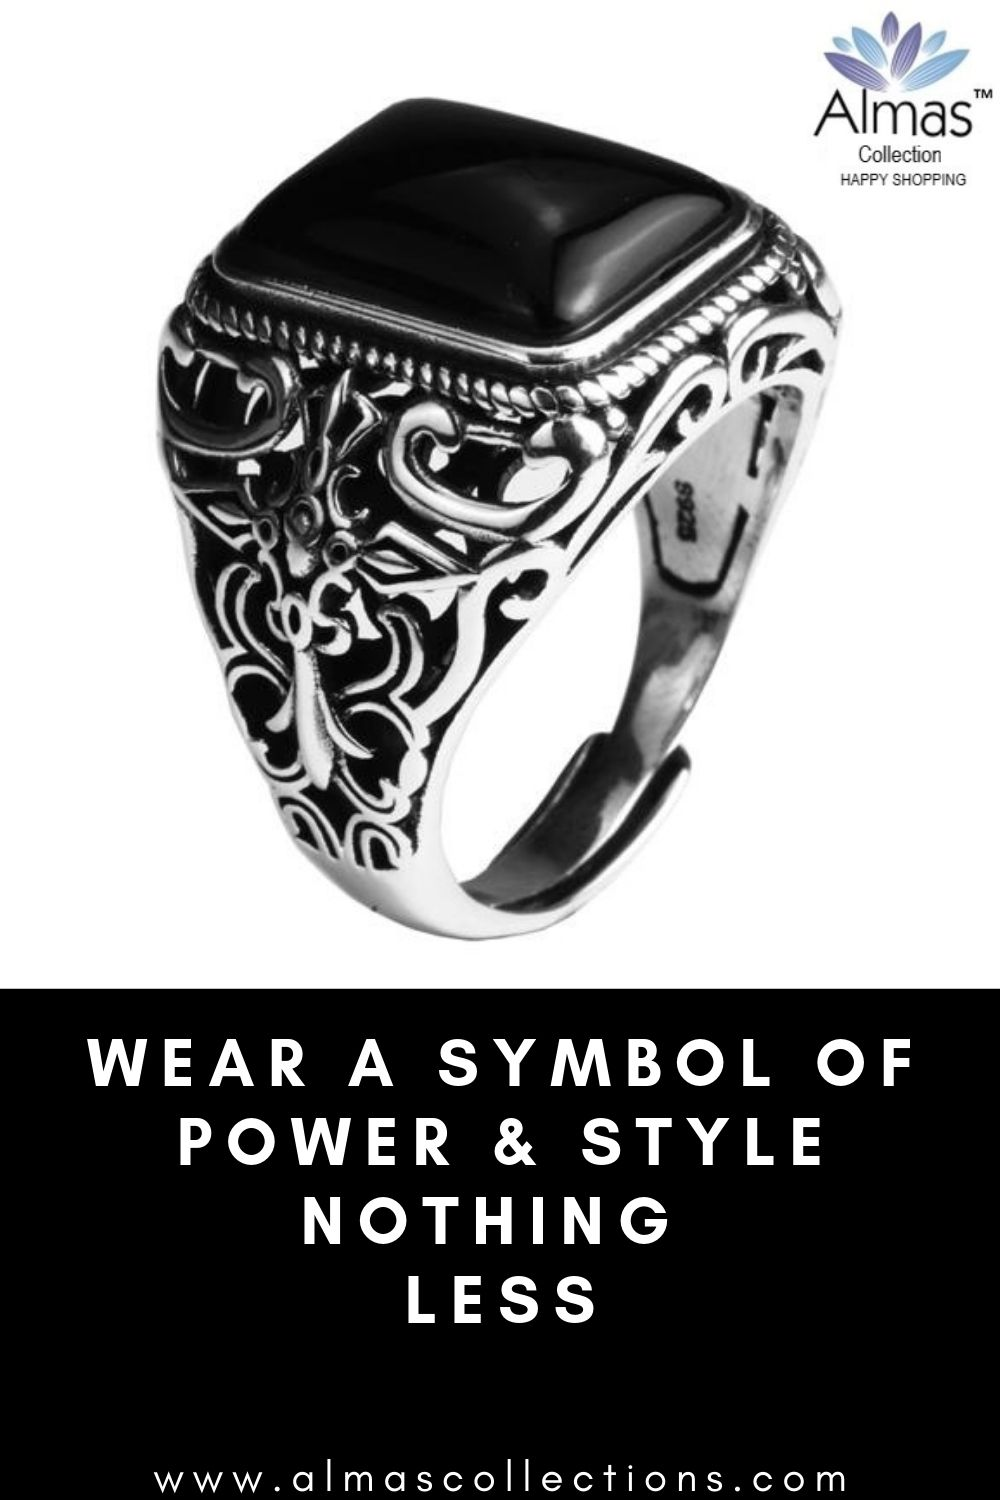 2b5262136 ONLY $49.99 + FREE SHIPPING New Vintage Black Onyx Stone Real 925 Sterling  Silver Ring.